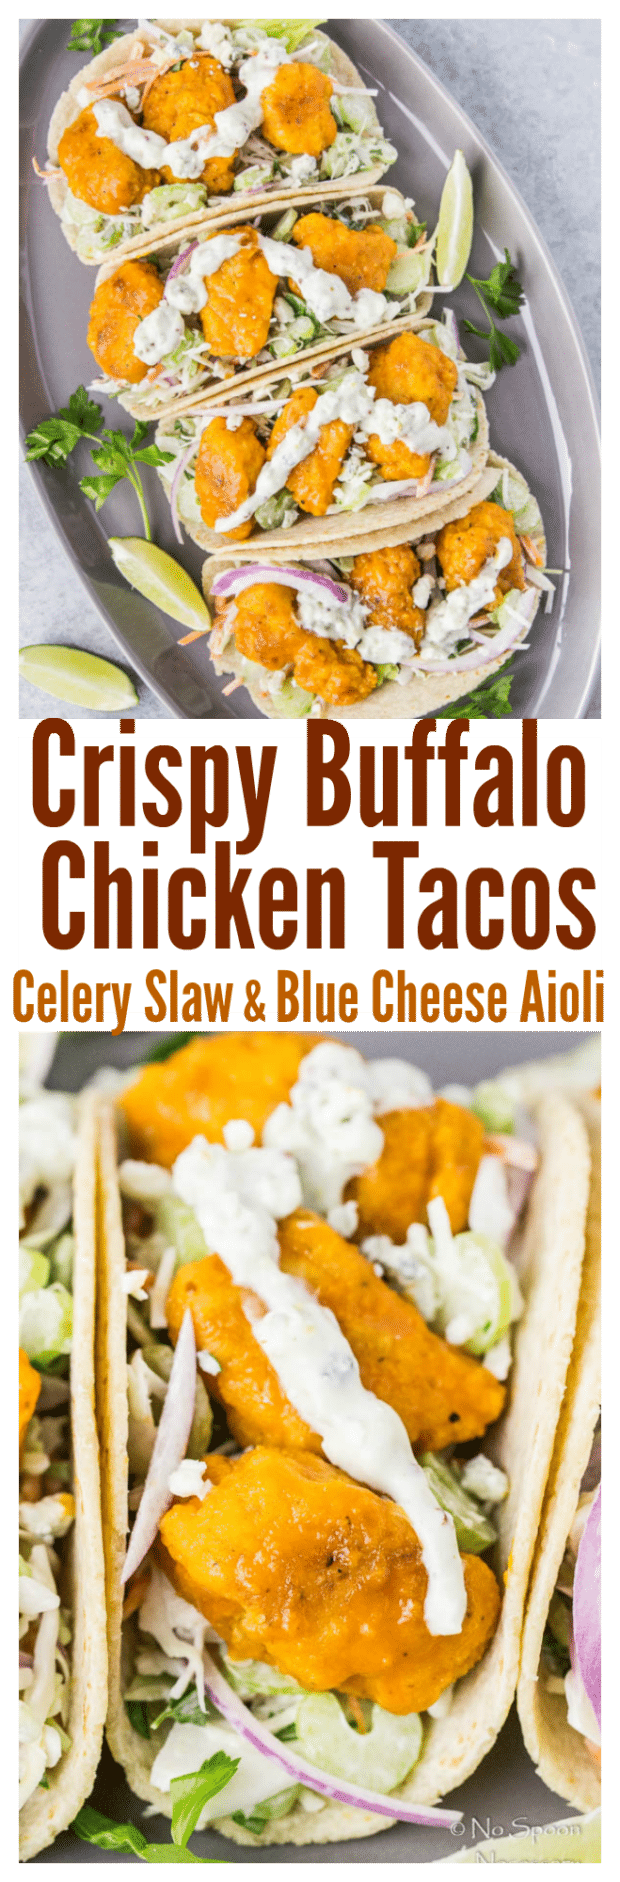 crispy-buffalo-chicken-tacos-with-celery-slaw-blue-cheese-aioli-long-pin1